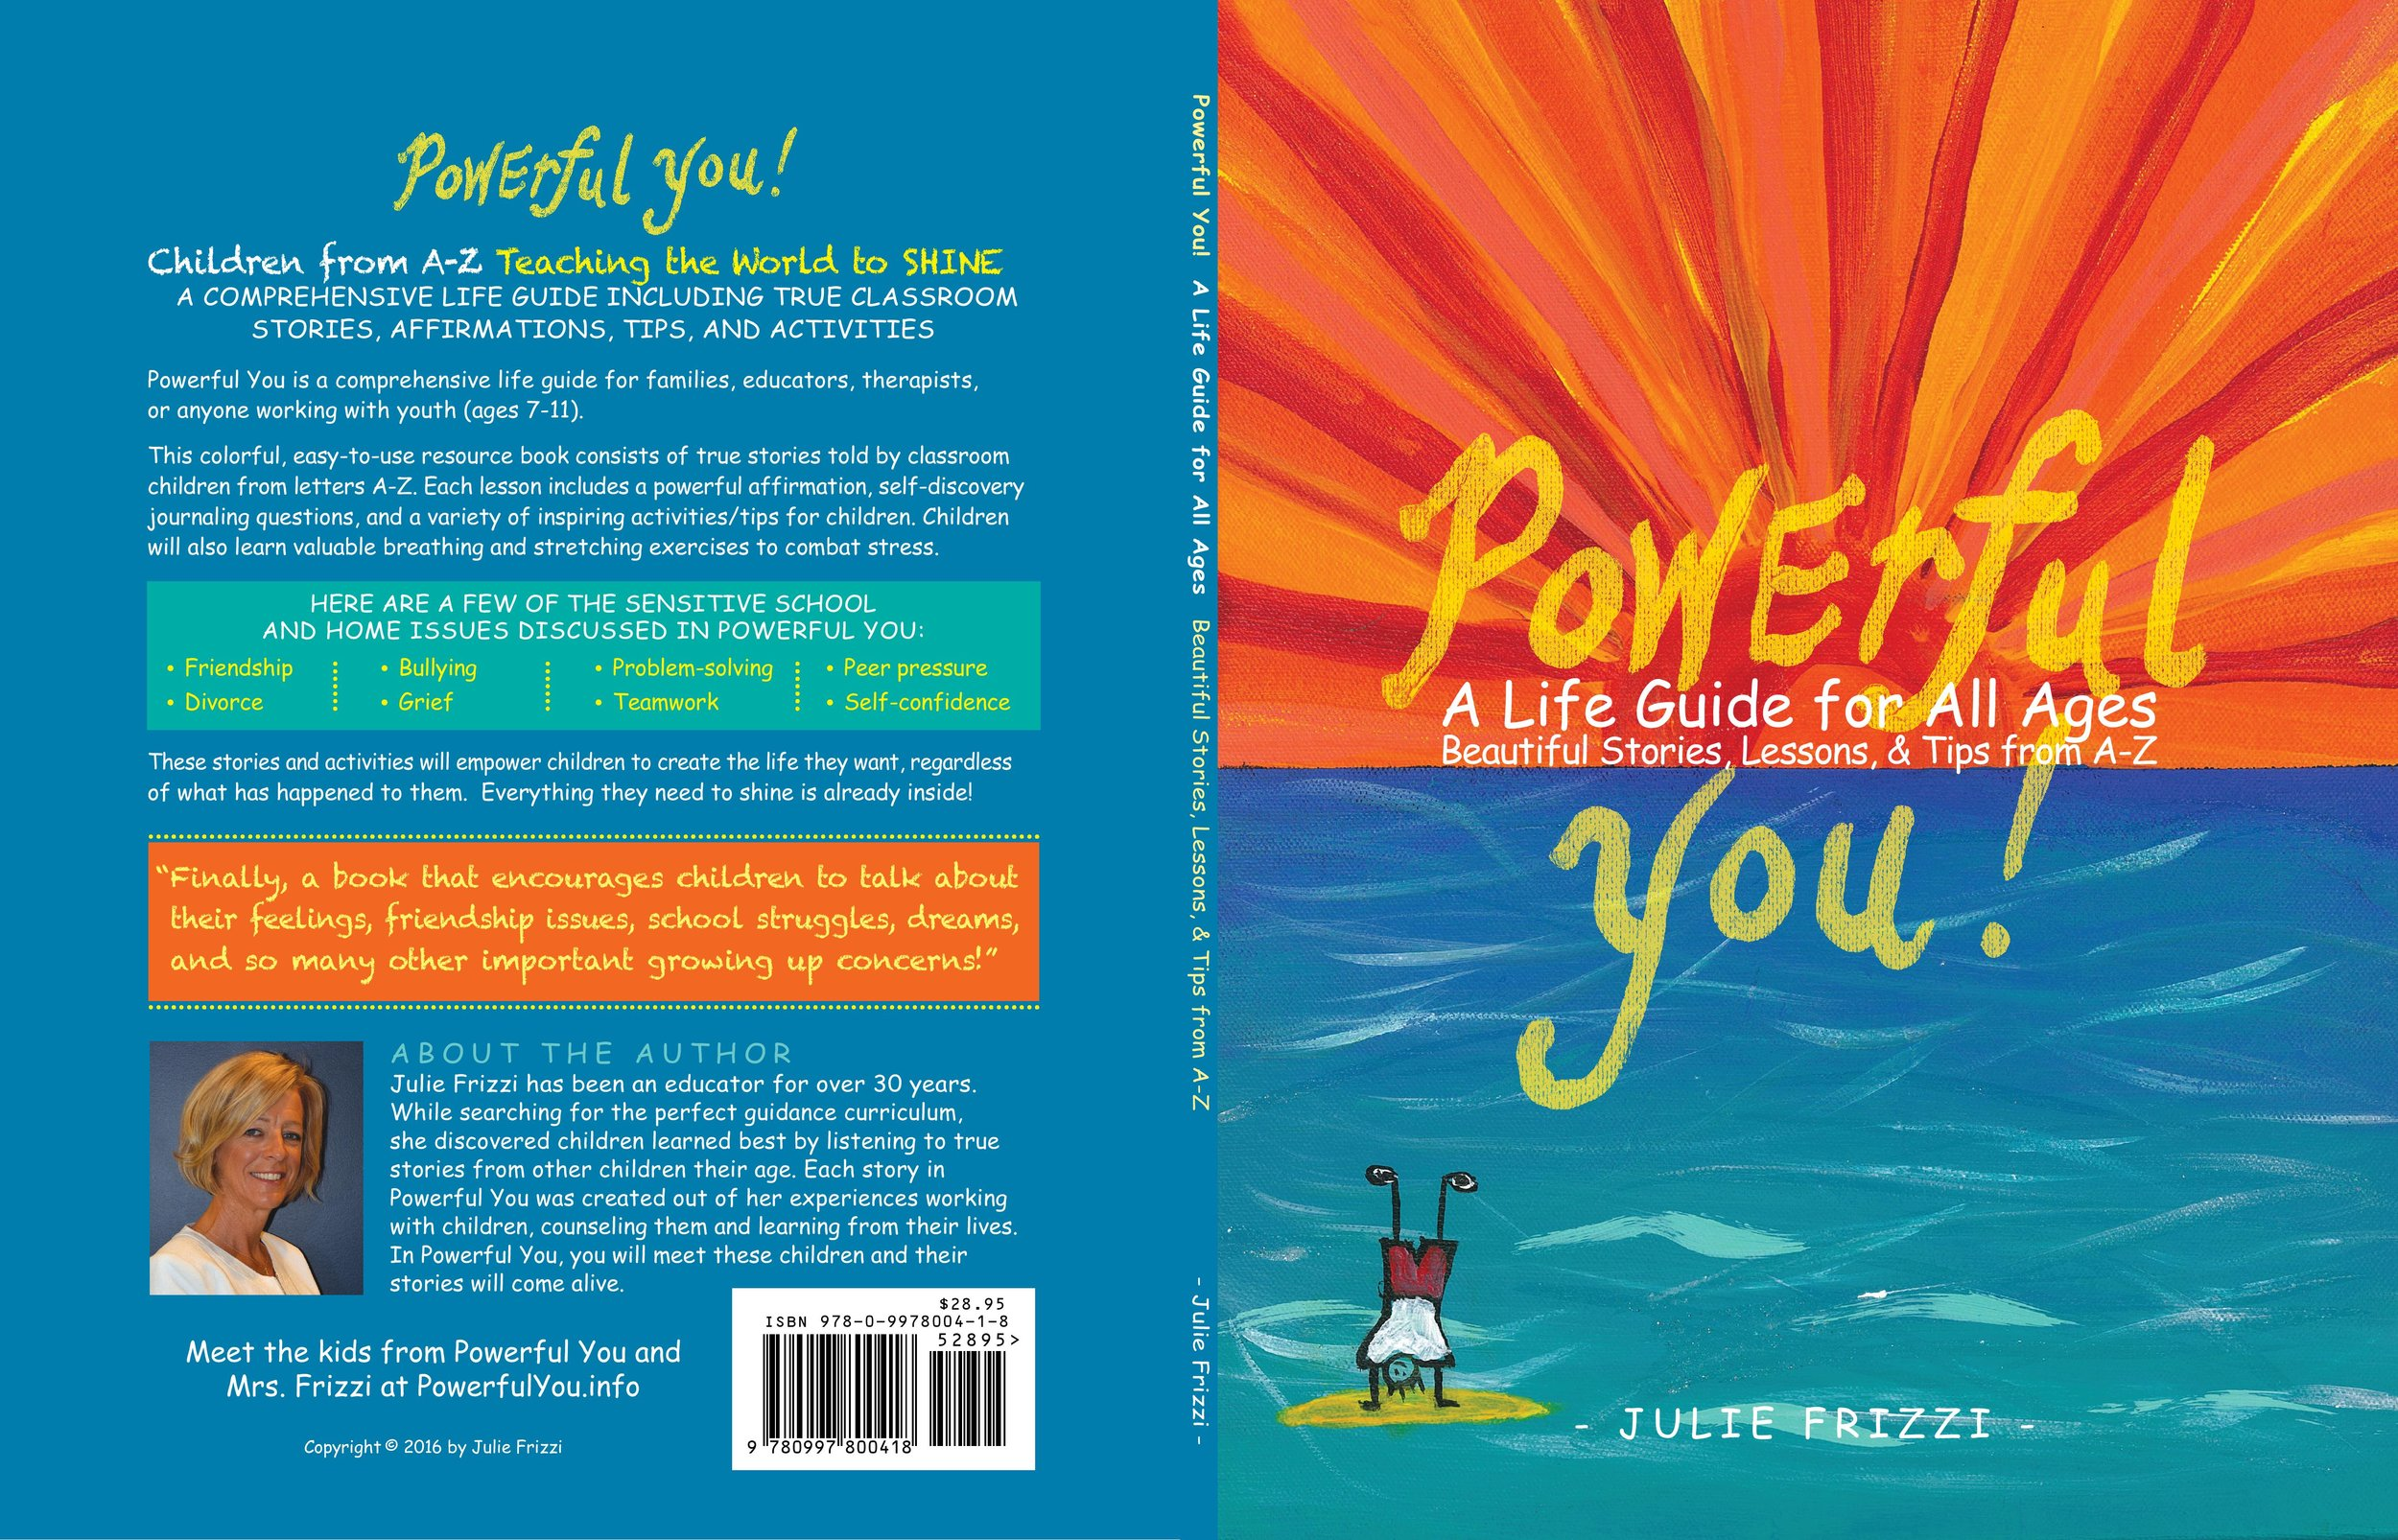 Powerful YOU! Book_Cover Spine Back_mechanical-page-001.jpg